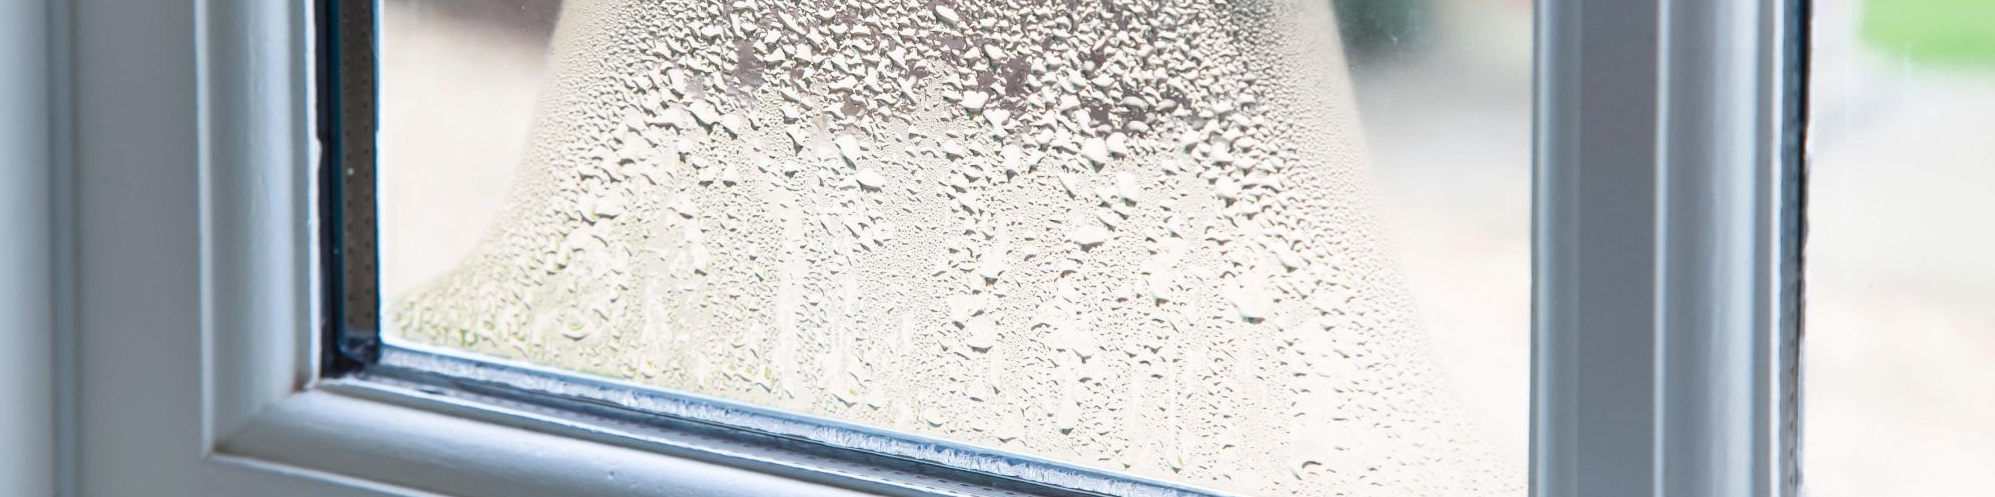 How To Get Rid Of Condensation in Between Double Glazed Windows